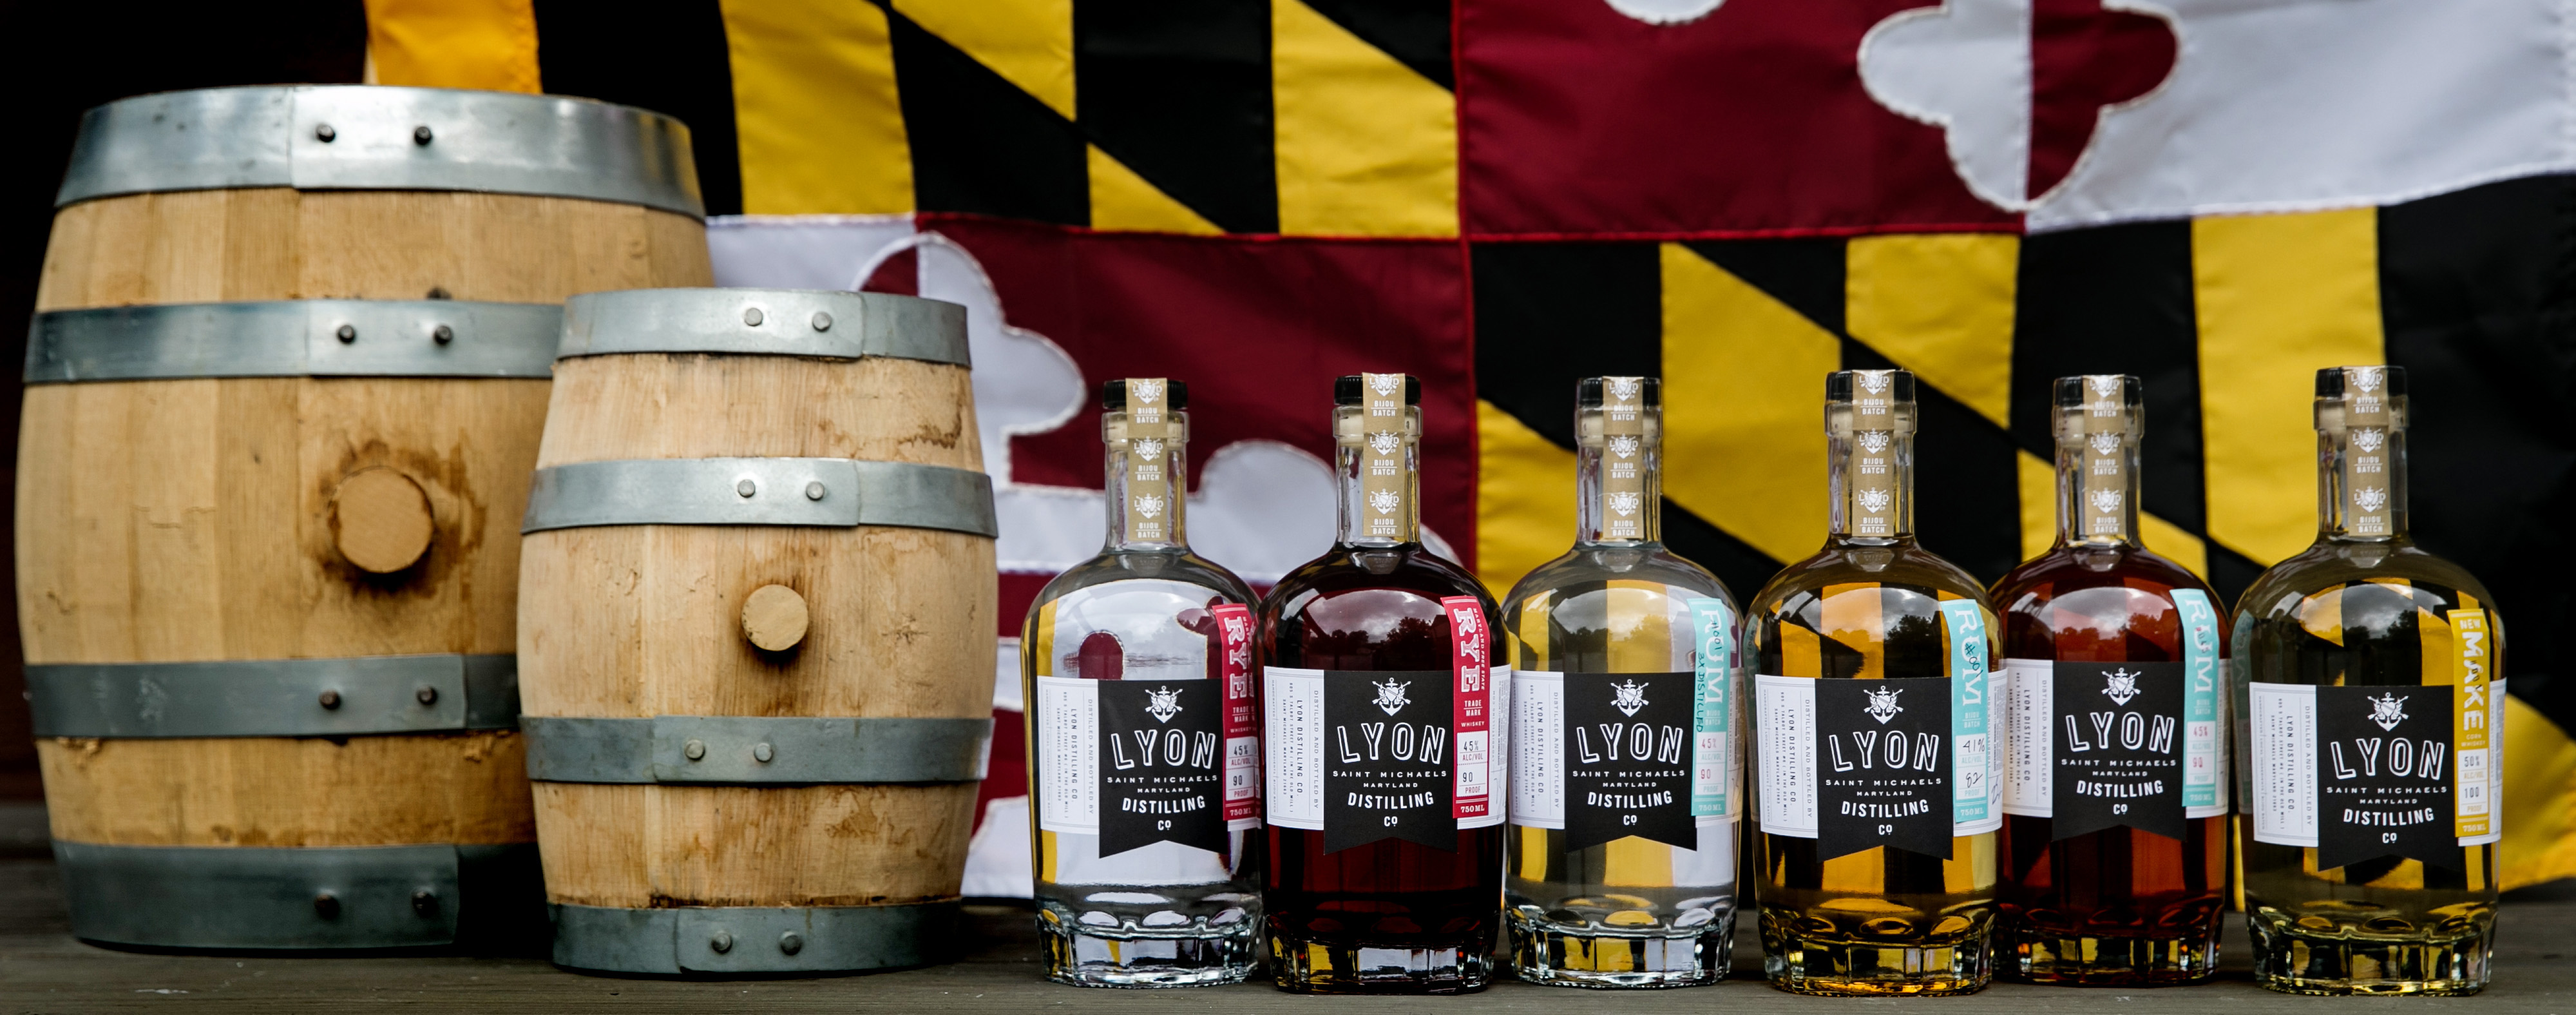 Photo Credit: Lyon Distilling Company